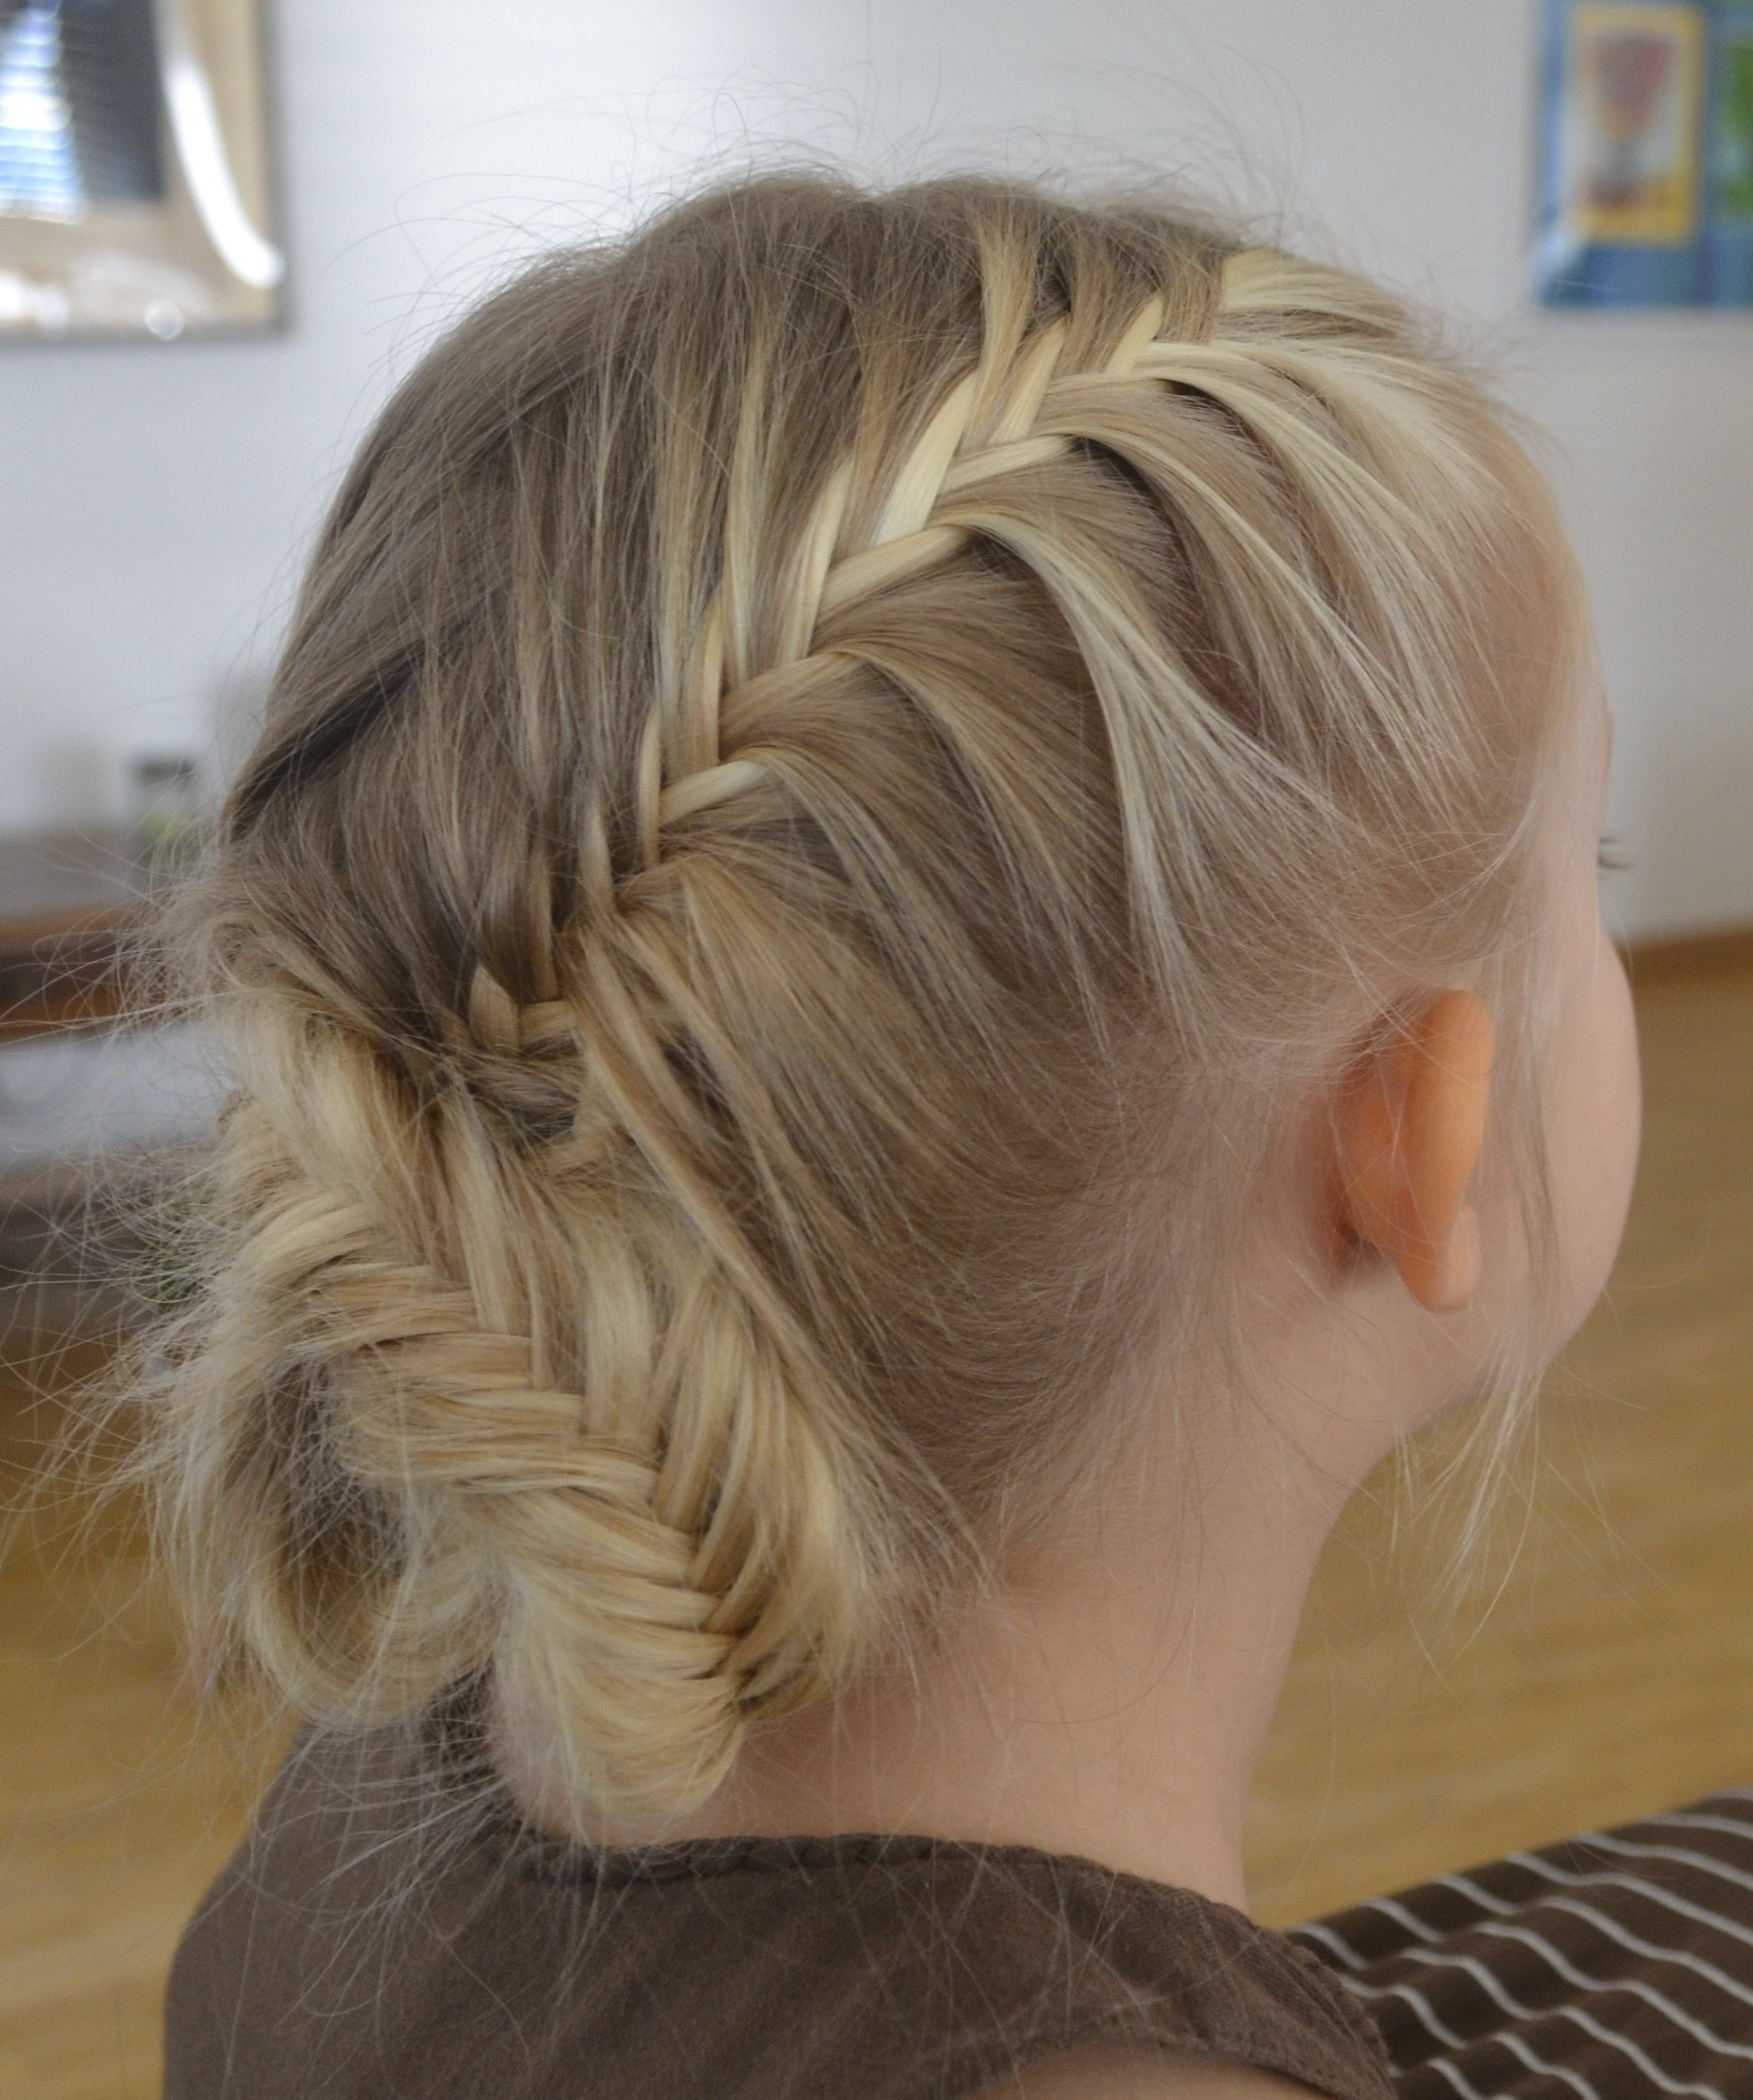 two french fishtail braids crossed over and pinned up